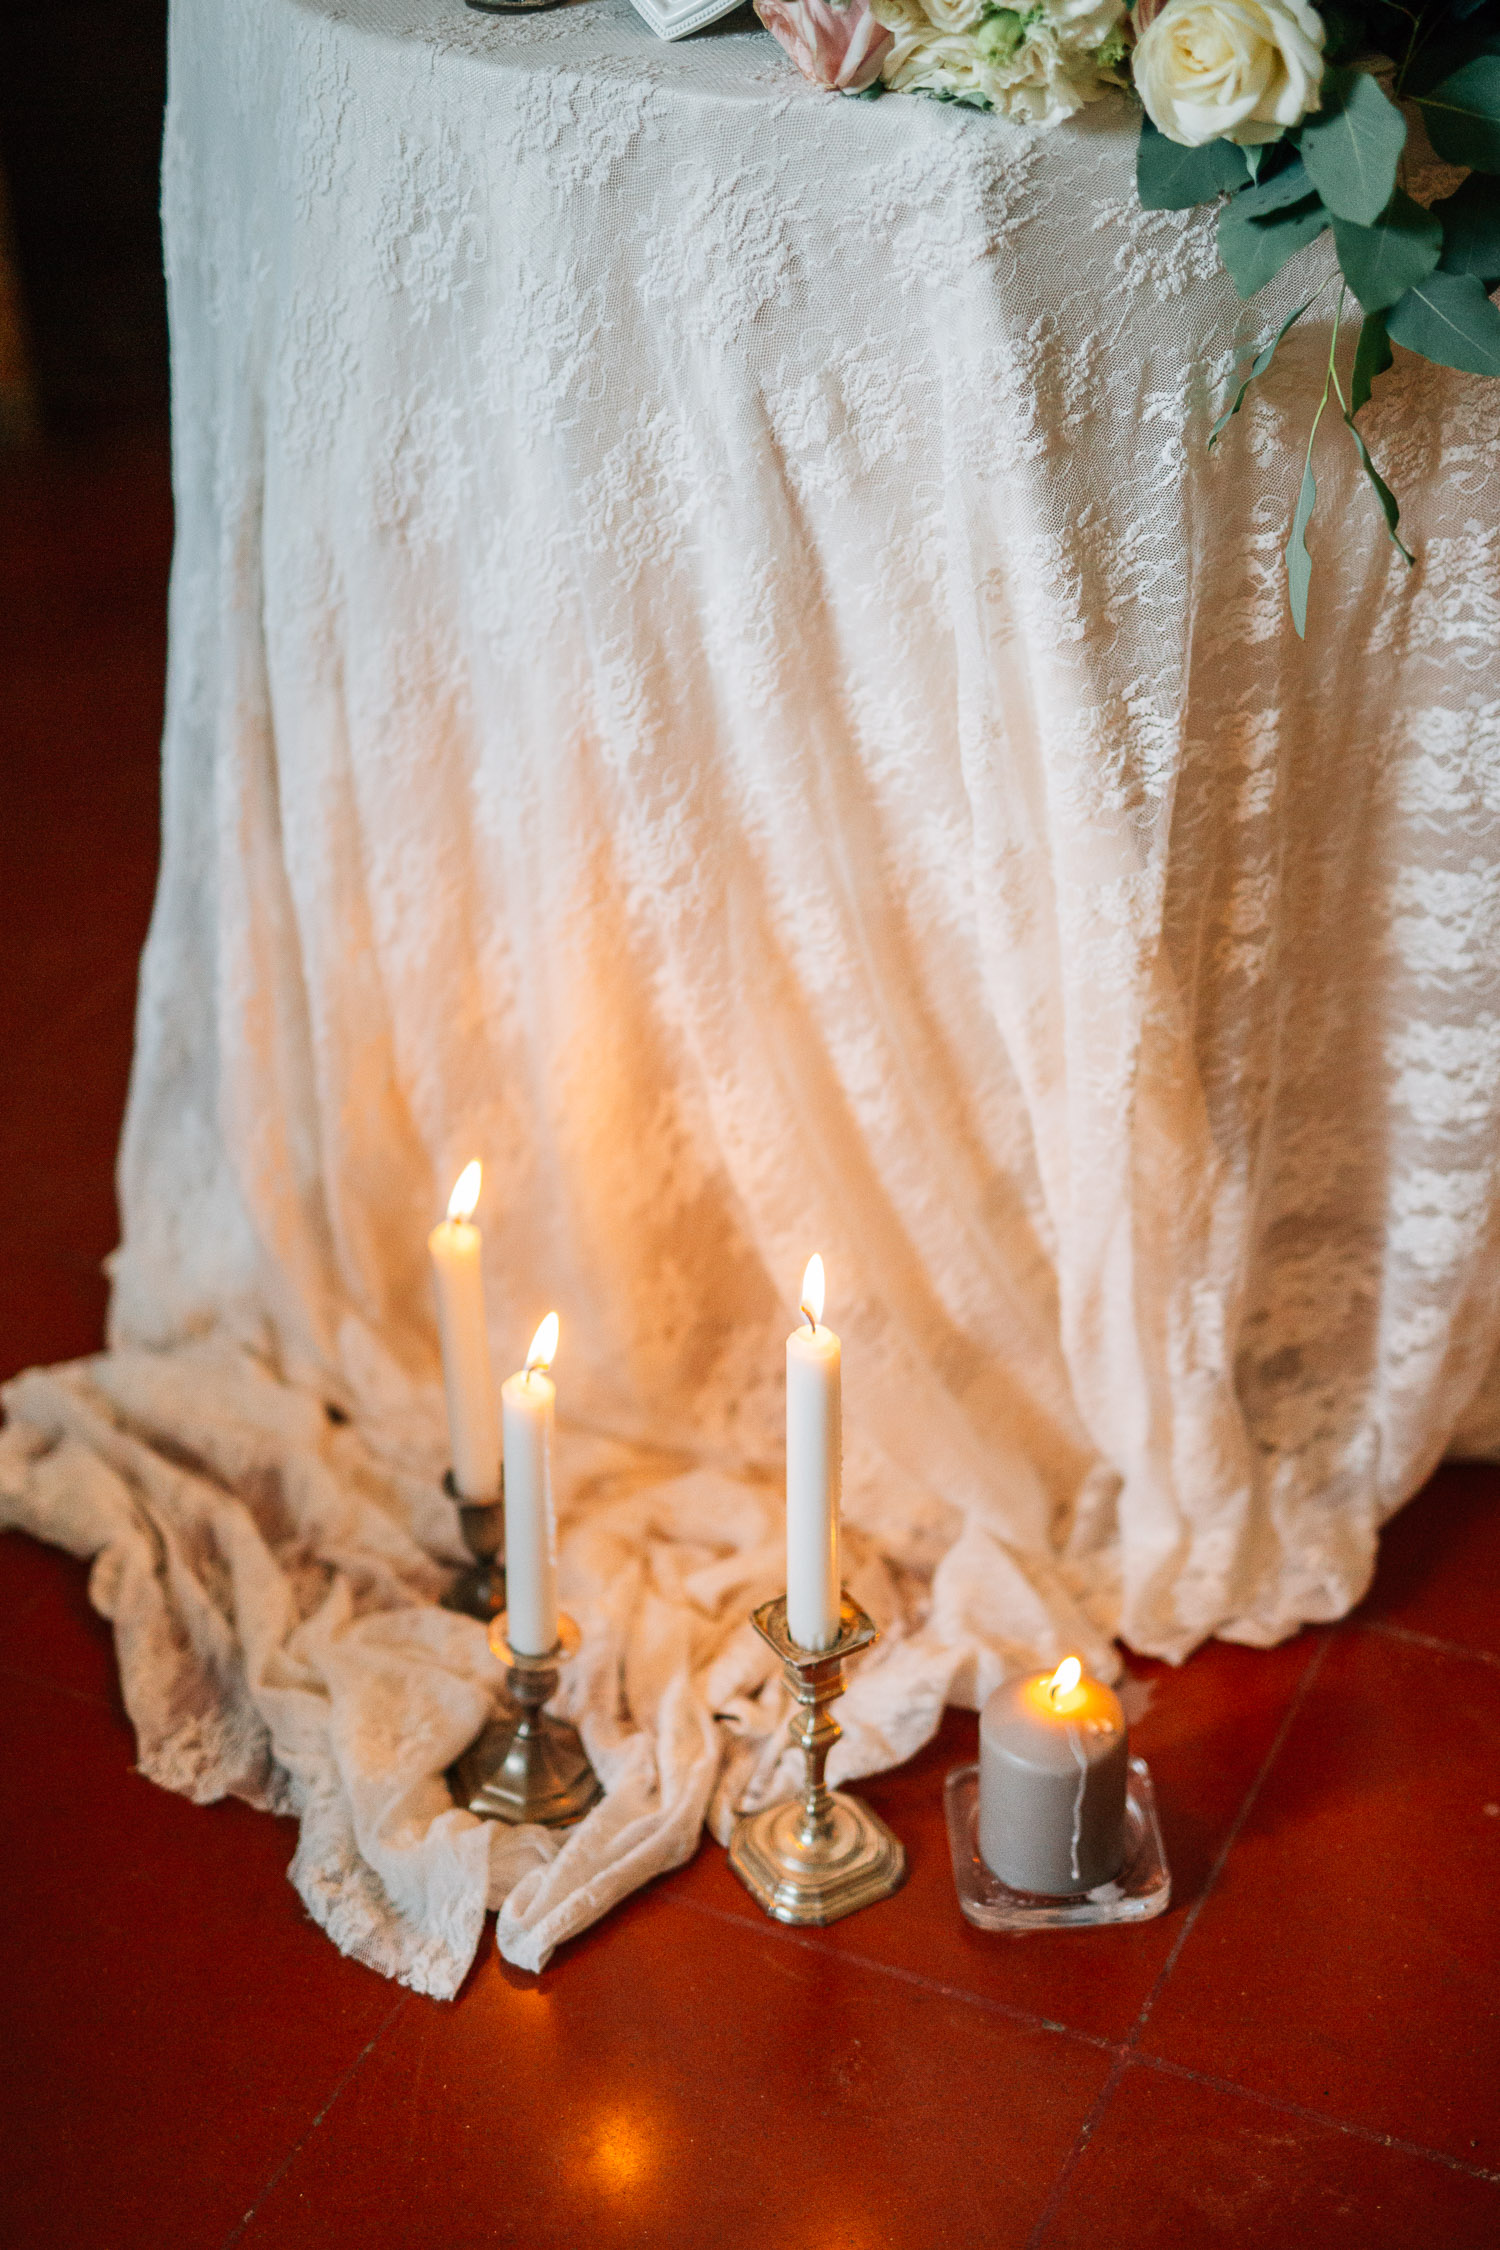 Candles and lace for a wedding at Vigna Chinet